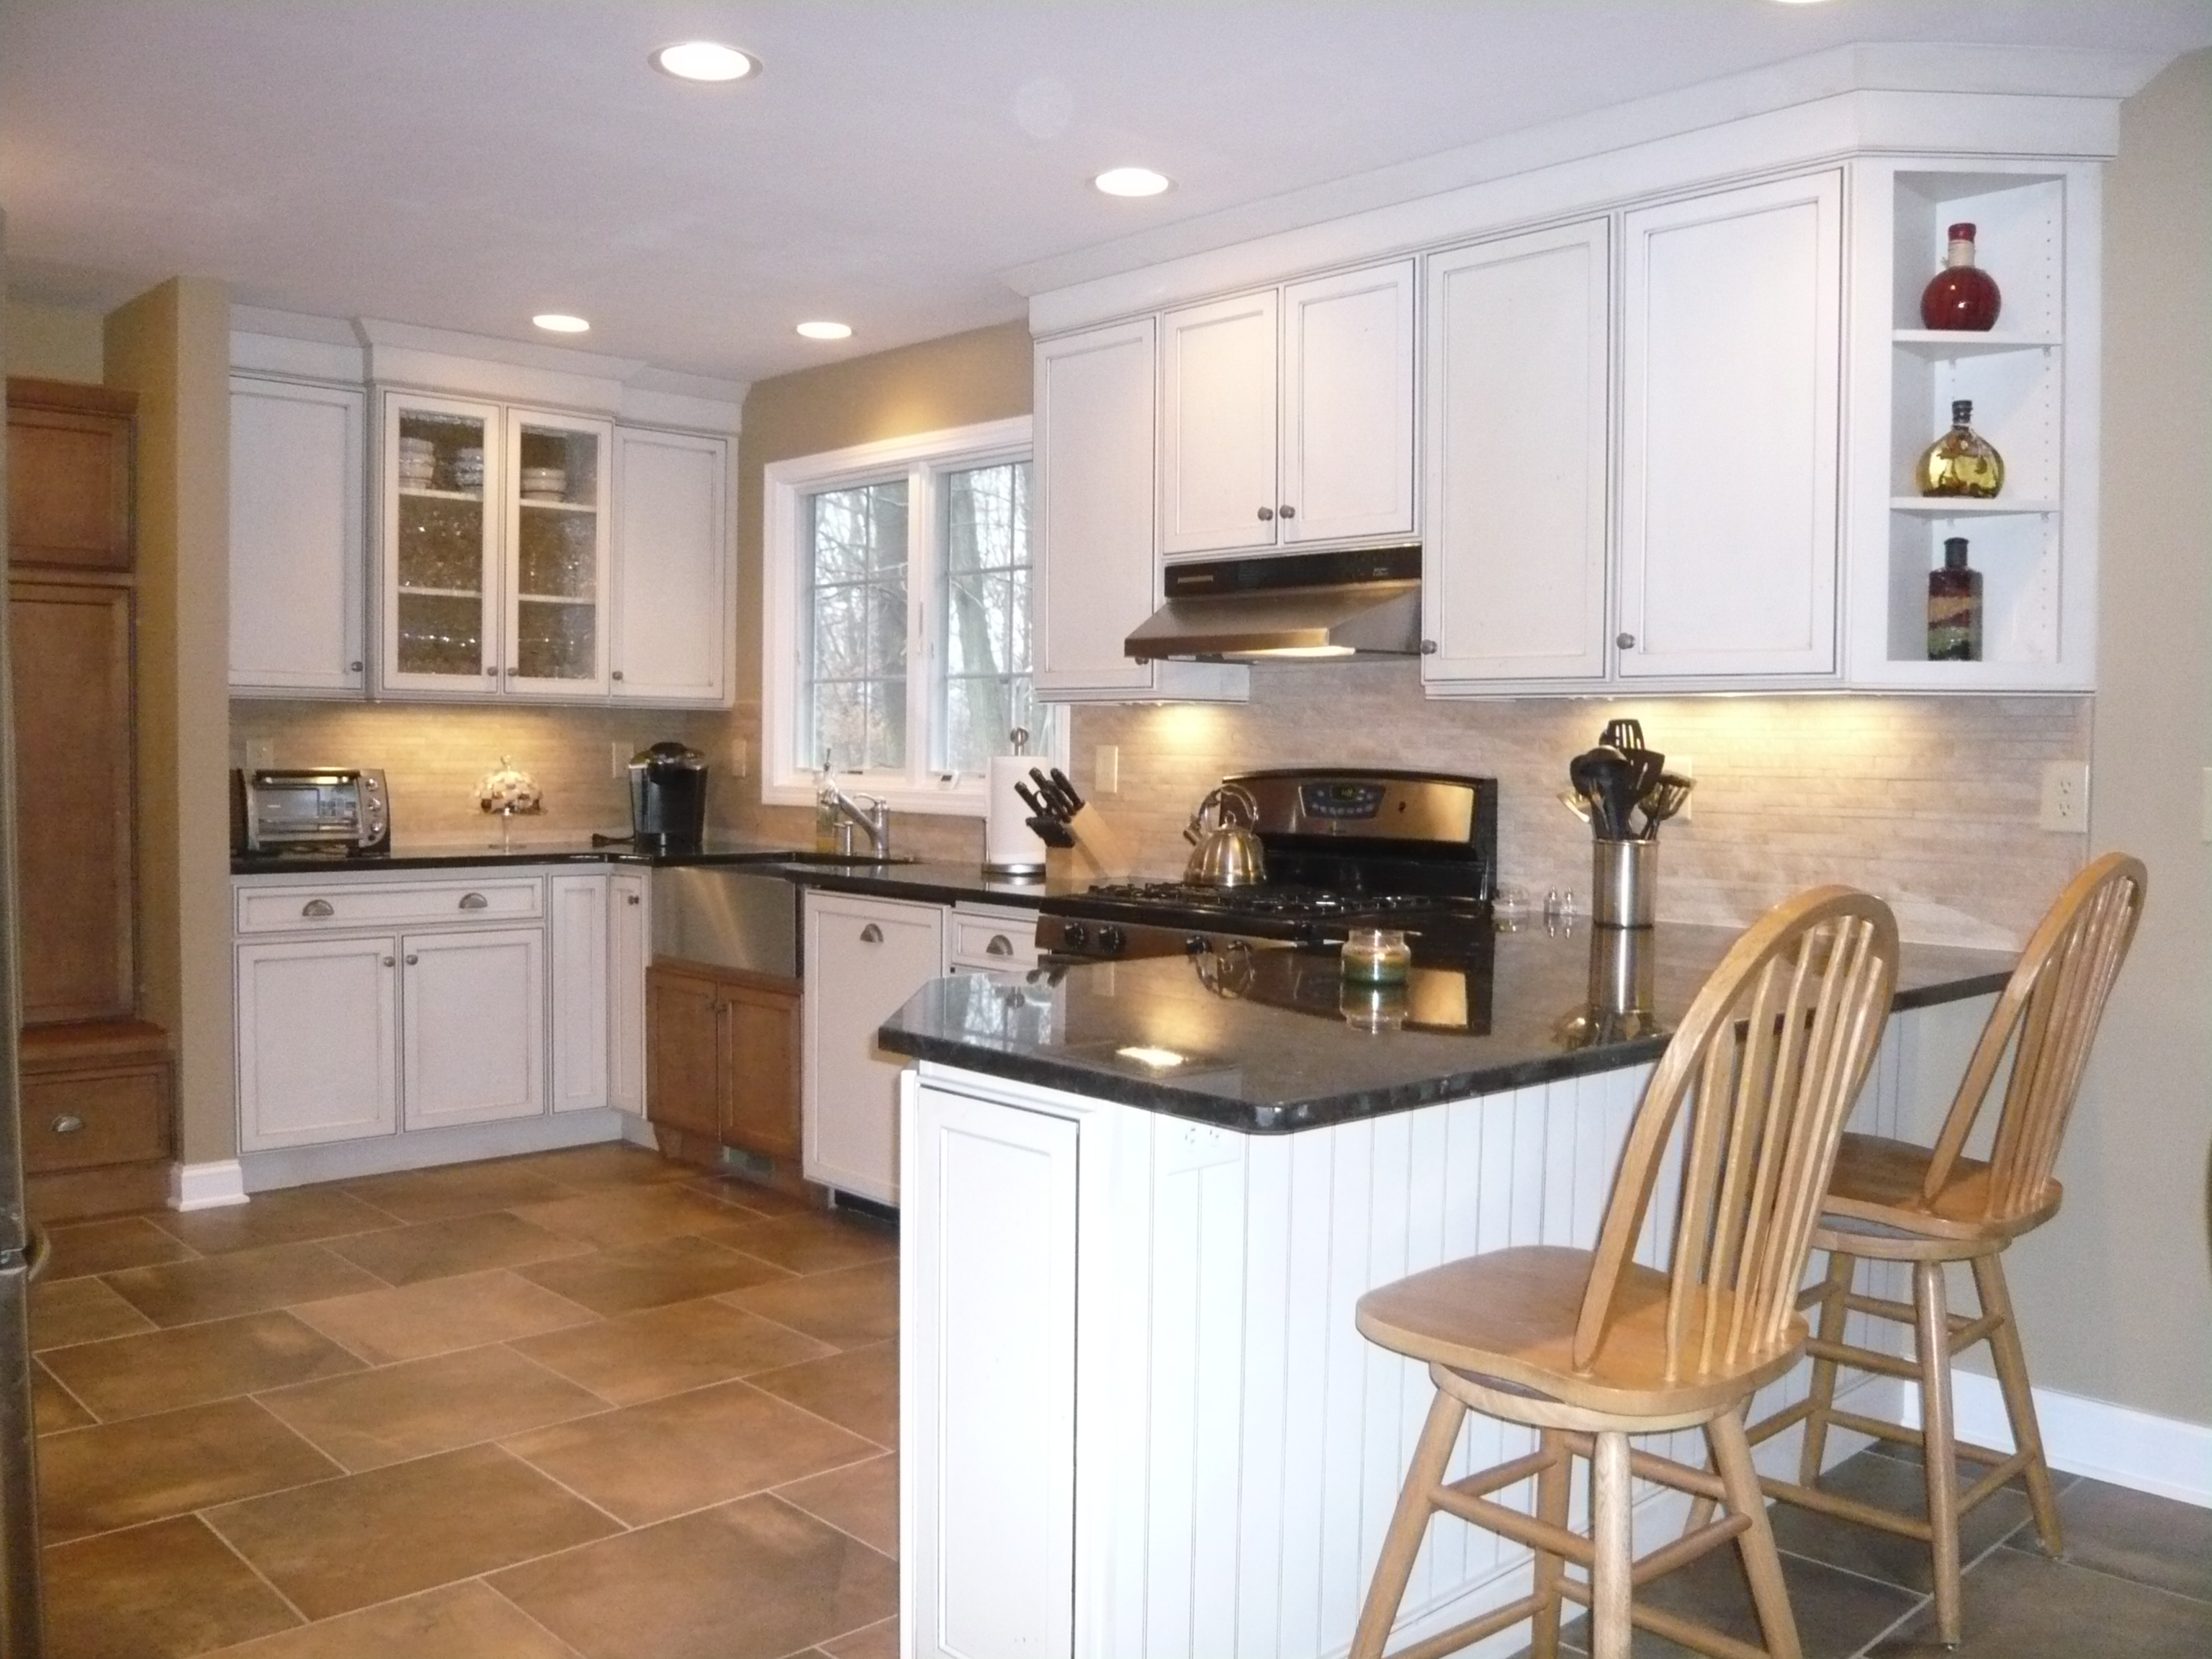 Http Www Kitchendesigncenter Ct Com Content Rearrangement Space